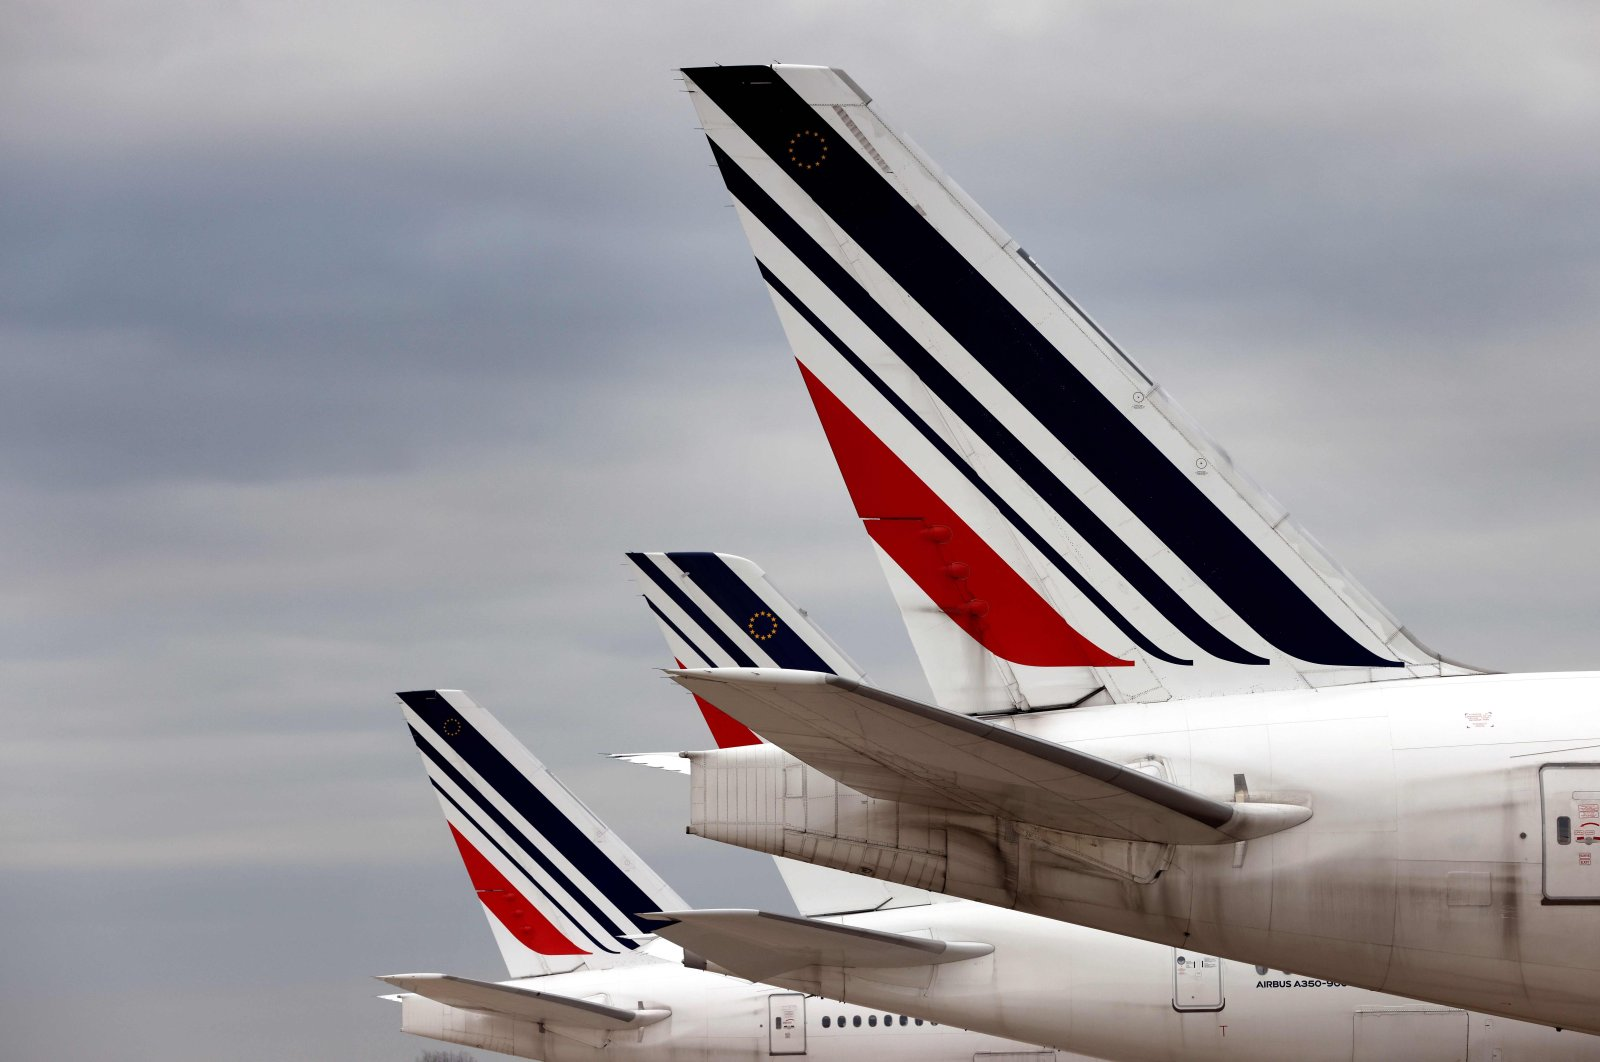 Air France planes are parked in Roissy airport, northern Paris, France, Nov. 25, 2020. (AFP Photo)